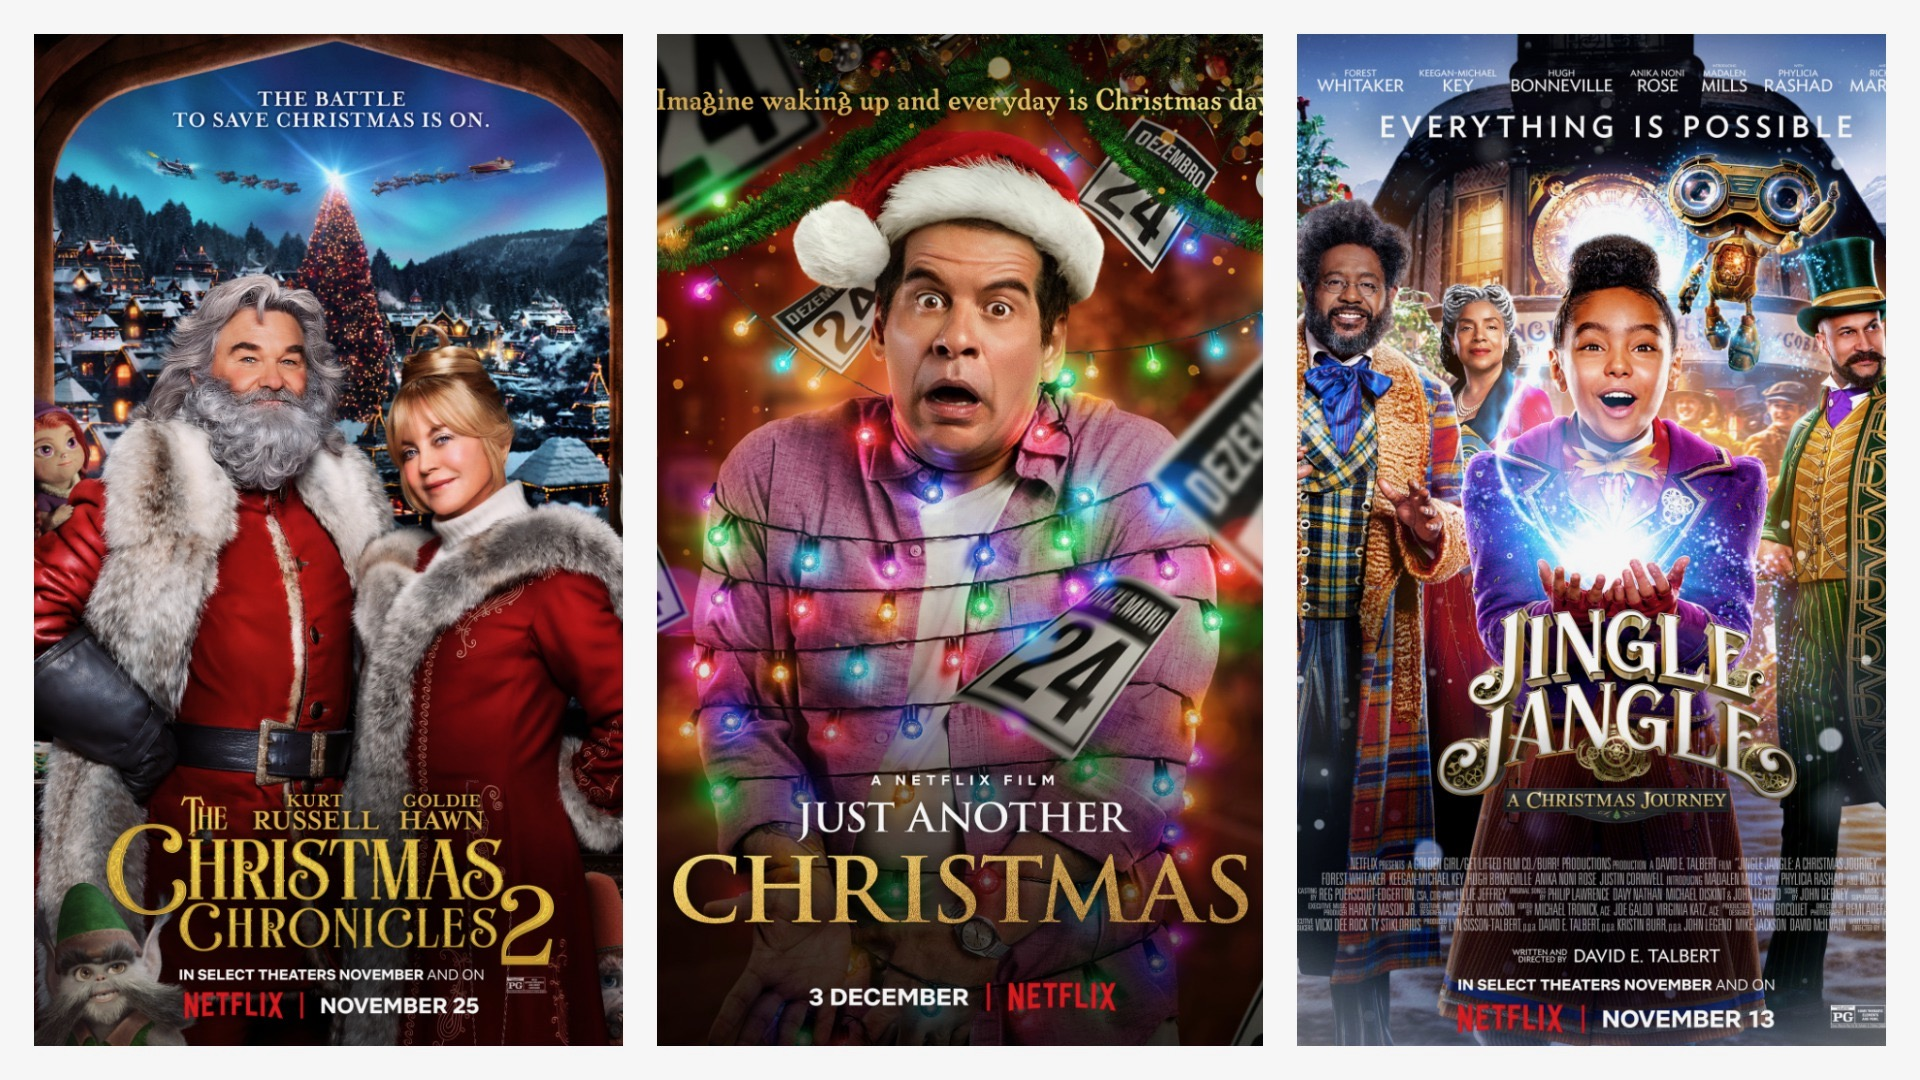 Holiday 2020: 9 new original Christmas movies coming to Netflix